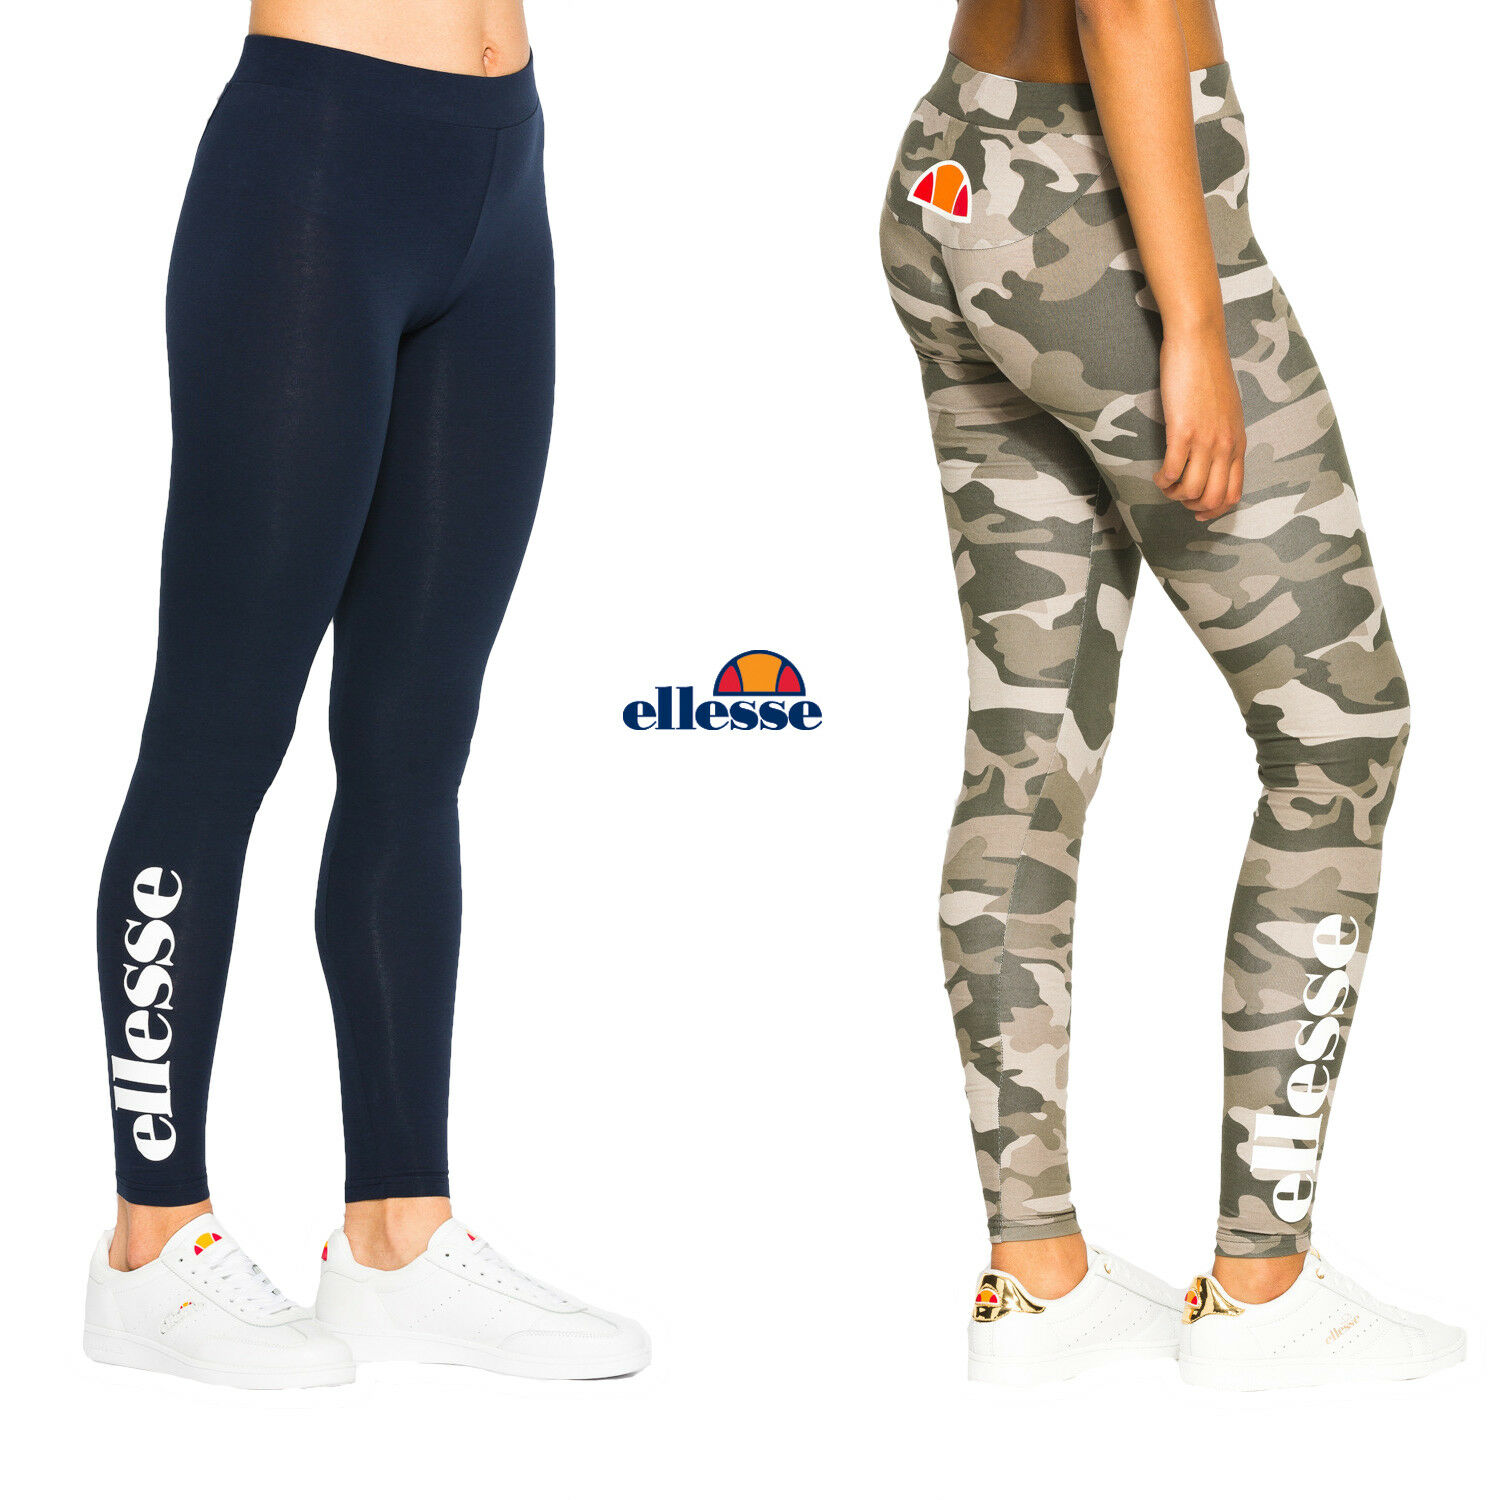 ellesse damen leggings solos gym fitness sporthose pants. Black Bedroom Furniture Sets. Home Design Ideas